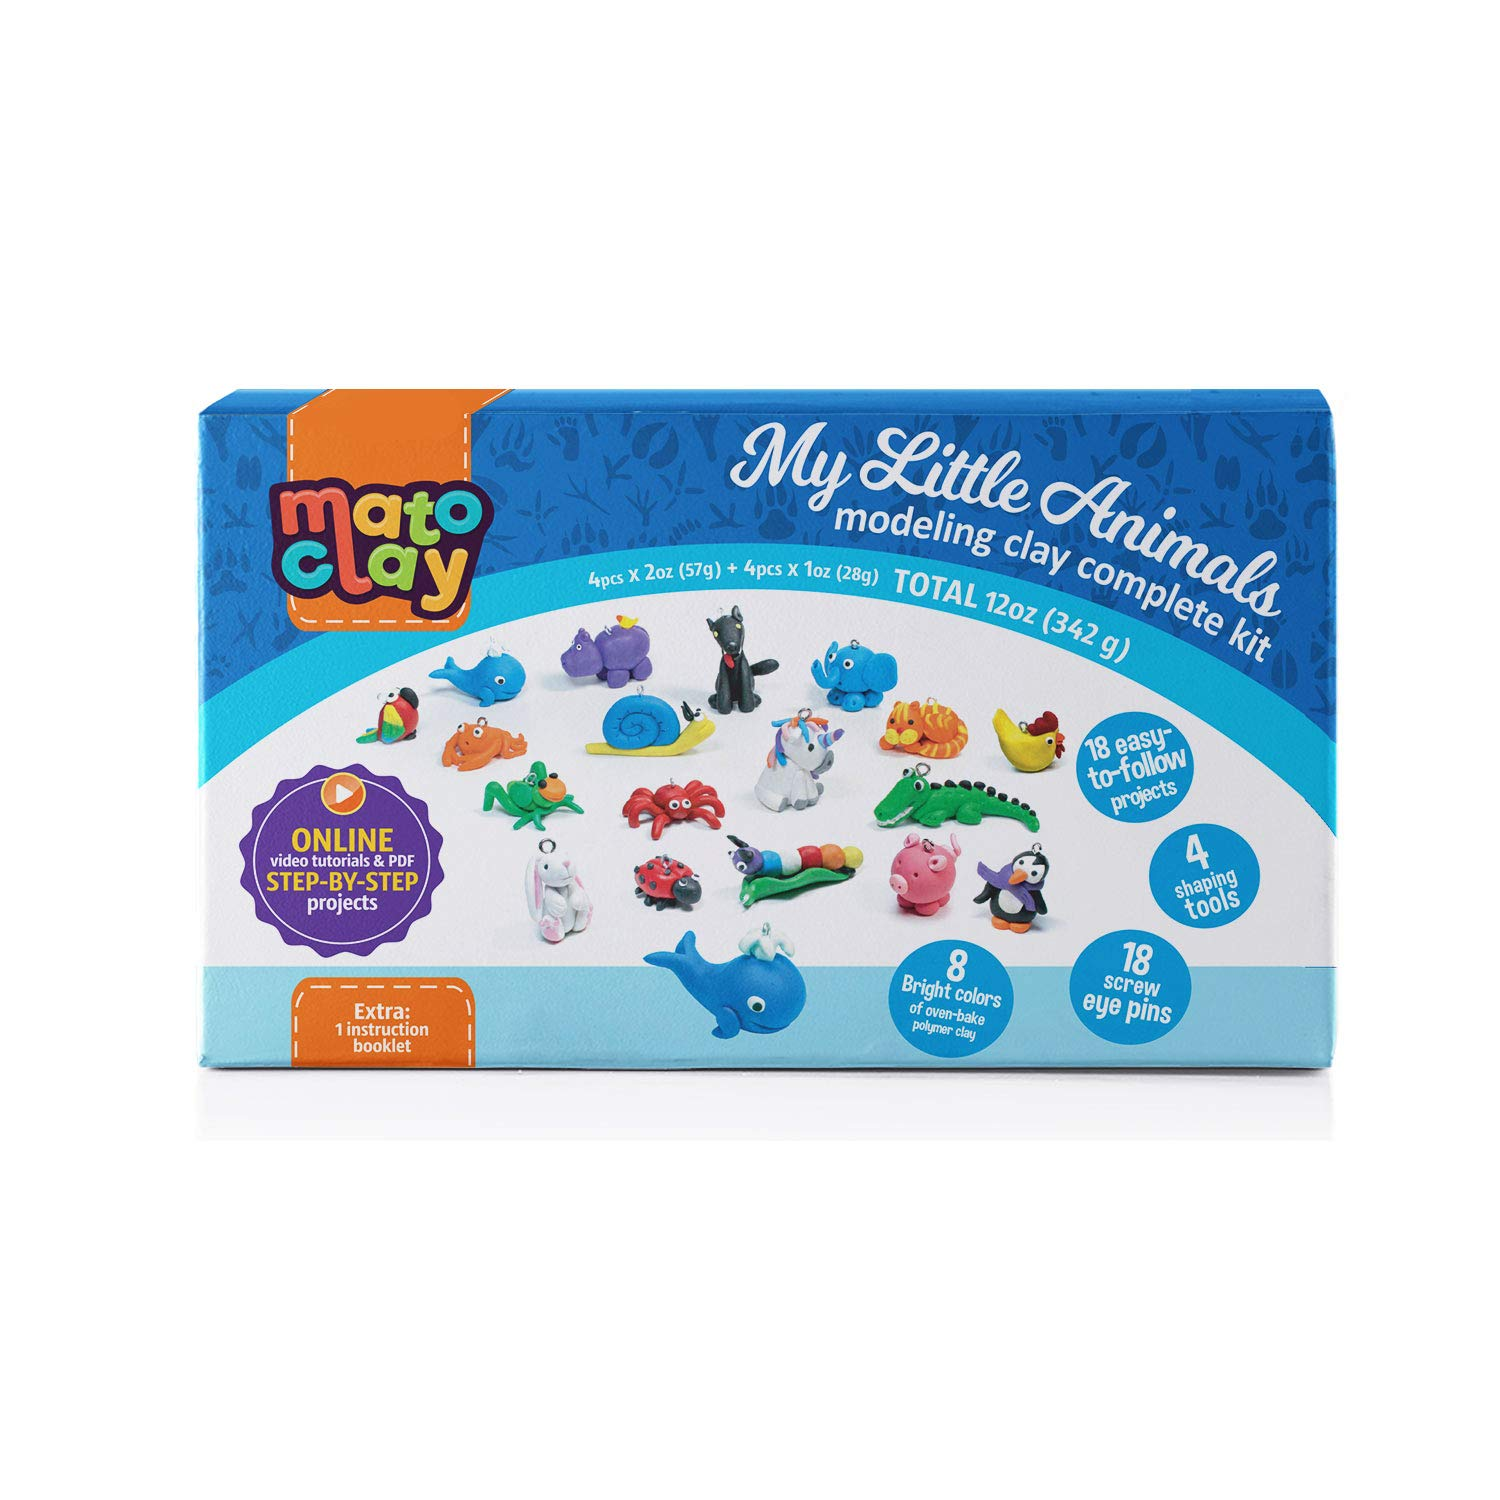 MatoClay Polymer Clay Kit for Kids with Step-by-Step Tutorials - Oven Bake Modeling Clay Charms Set | 18 Clear Photo & Video Tutorials, 8 Blocks, 3 Tools, 18 Screw Eye Pins, 1 Instruction Booklet